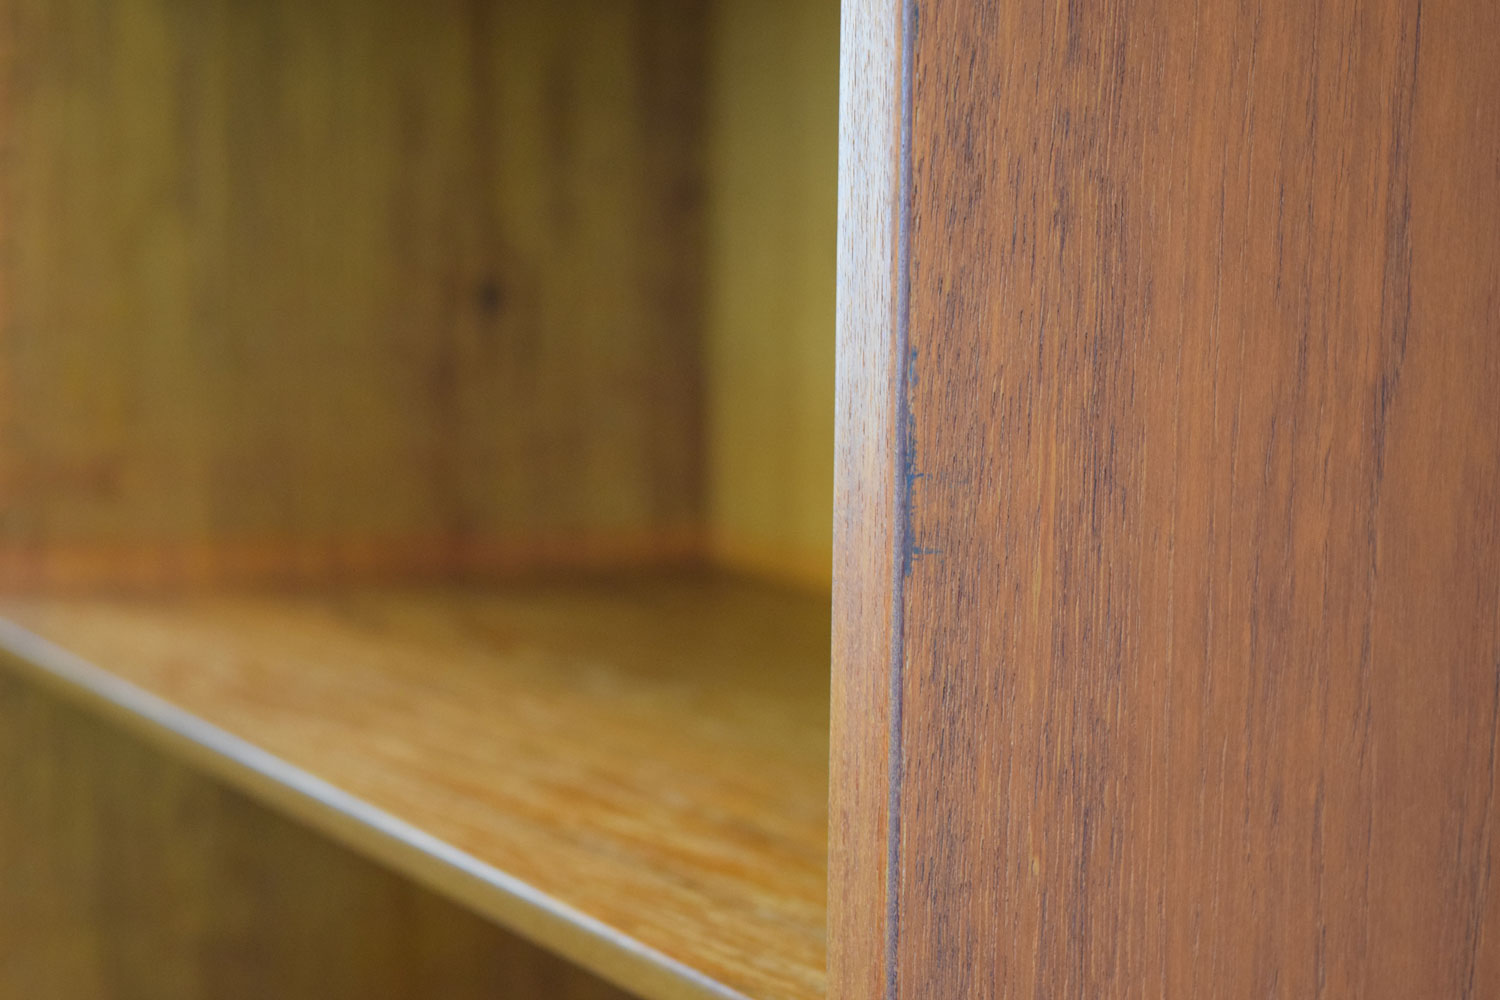 bookcase_1-edge2.jpg